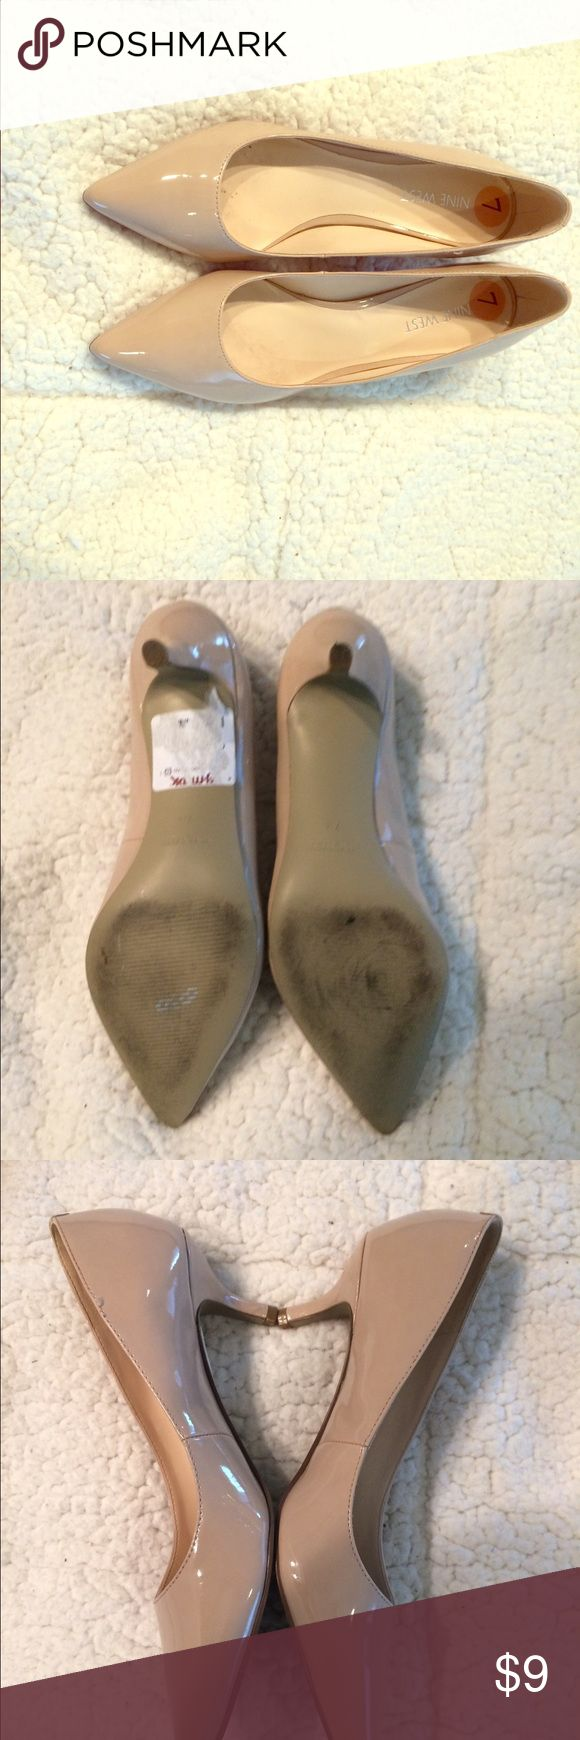 Nine West nude patent leather pumps Worn once for outdoor wedding Shoes Heels